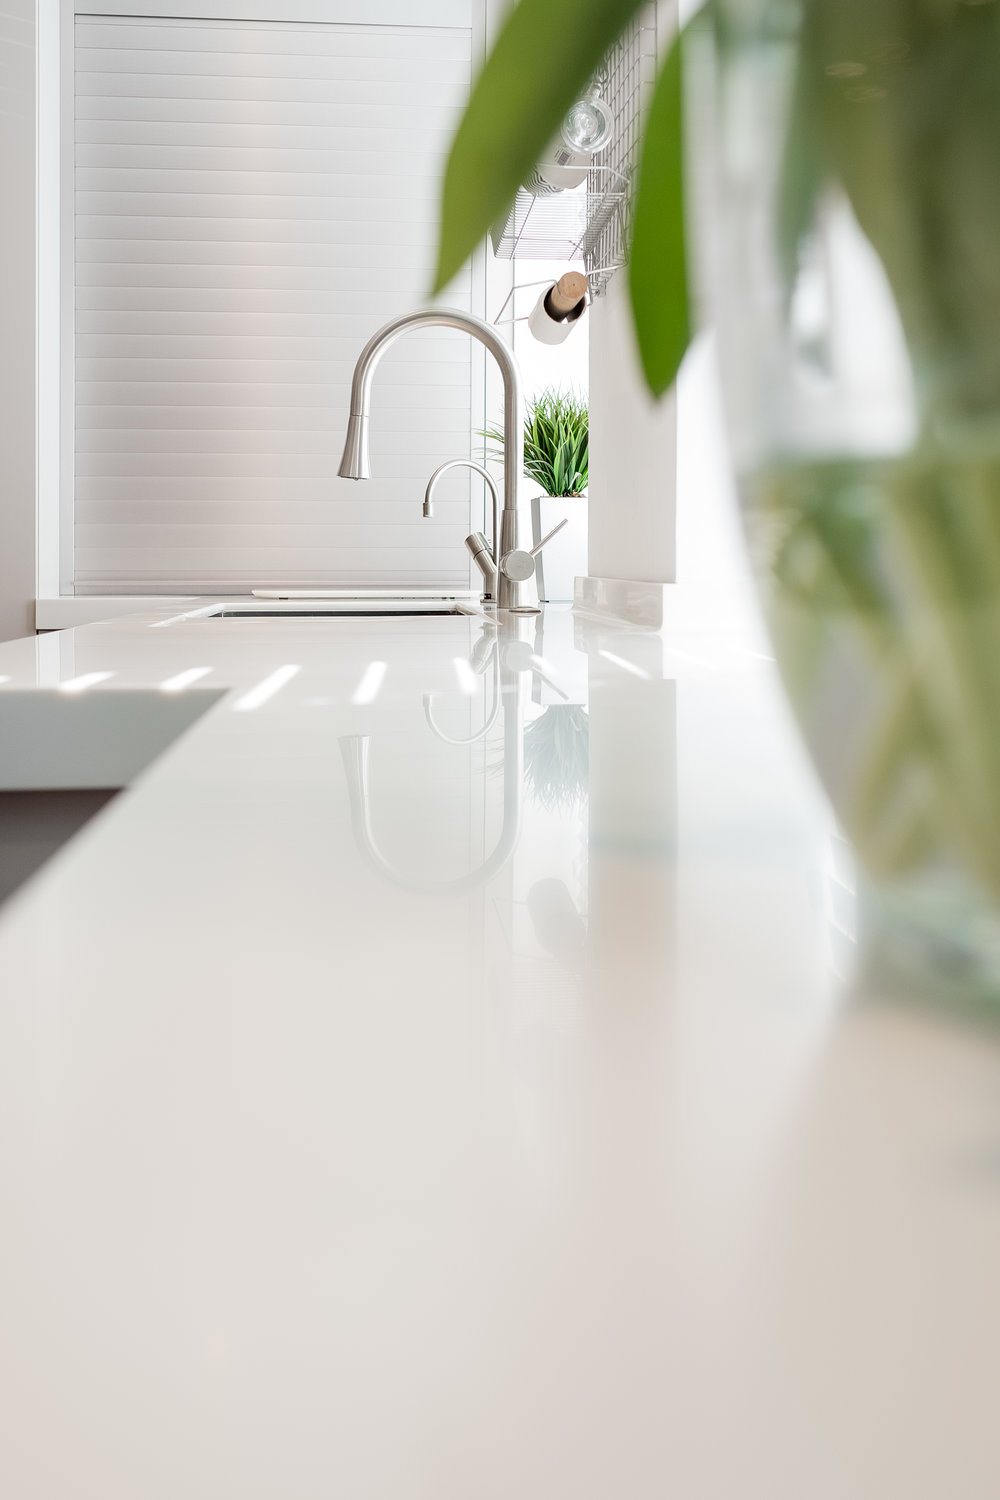 kitchens-cheltenham-design-A8.JPG